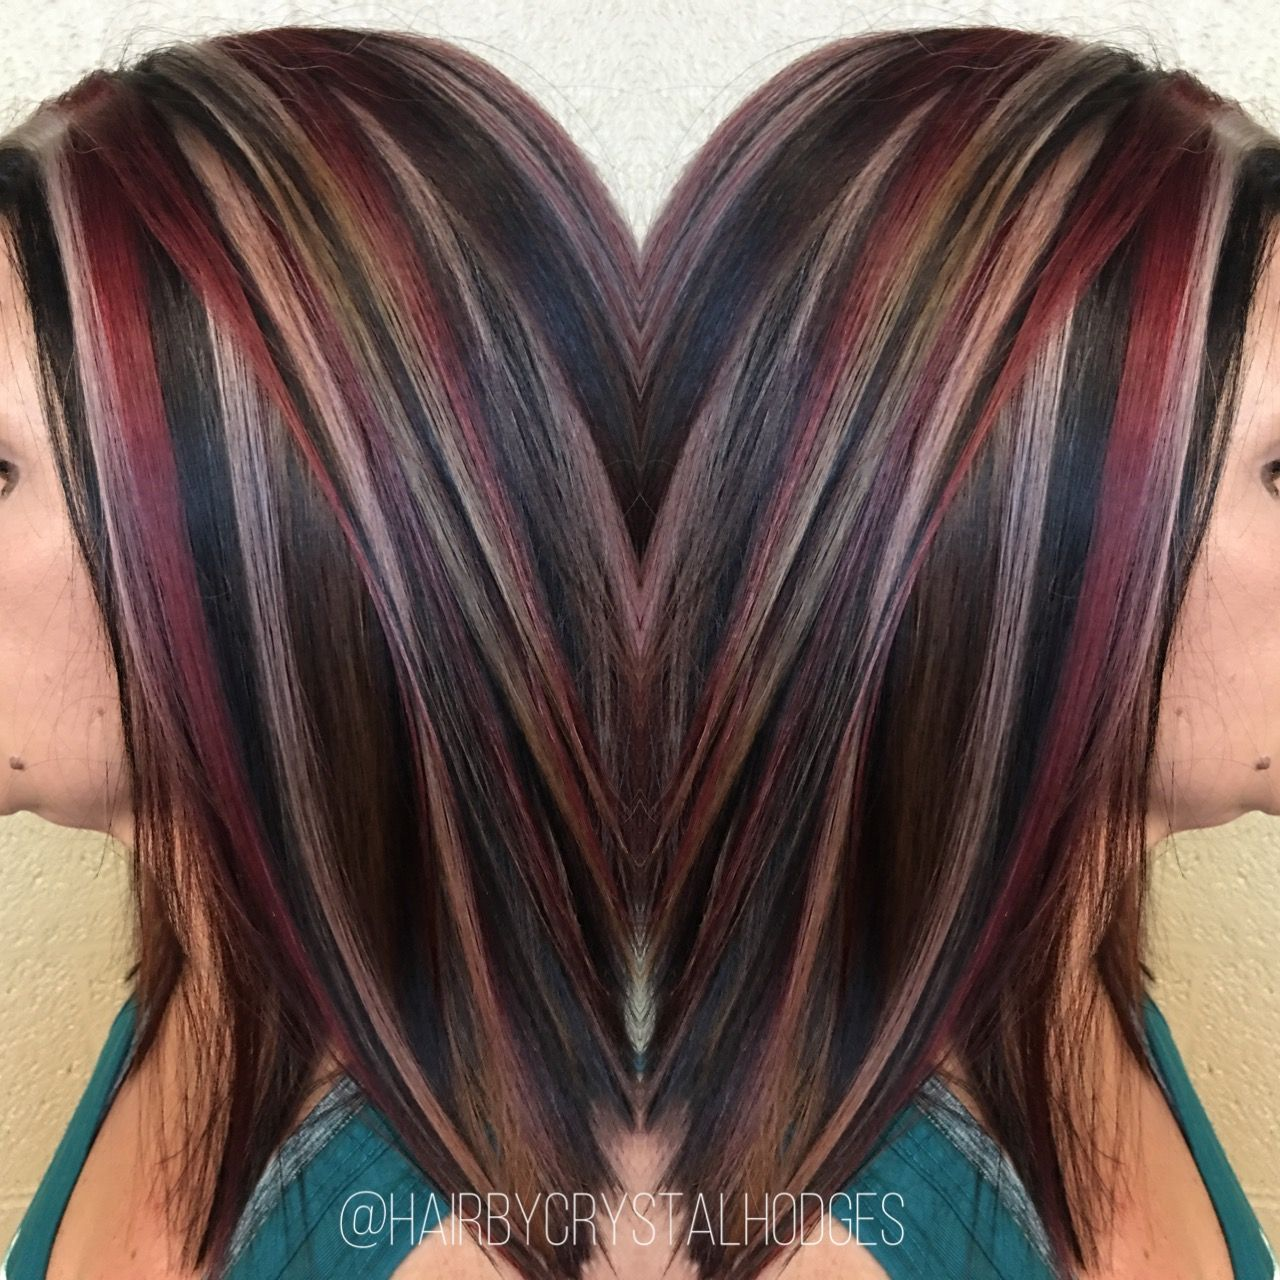 Chunky highlight red blonde brown hair cuts and hair color